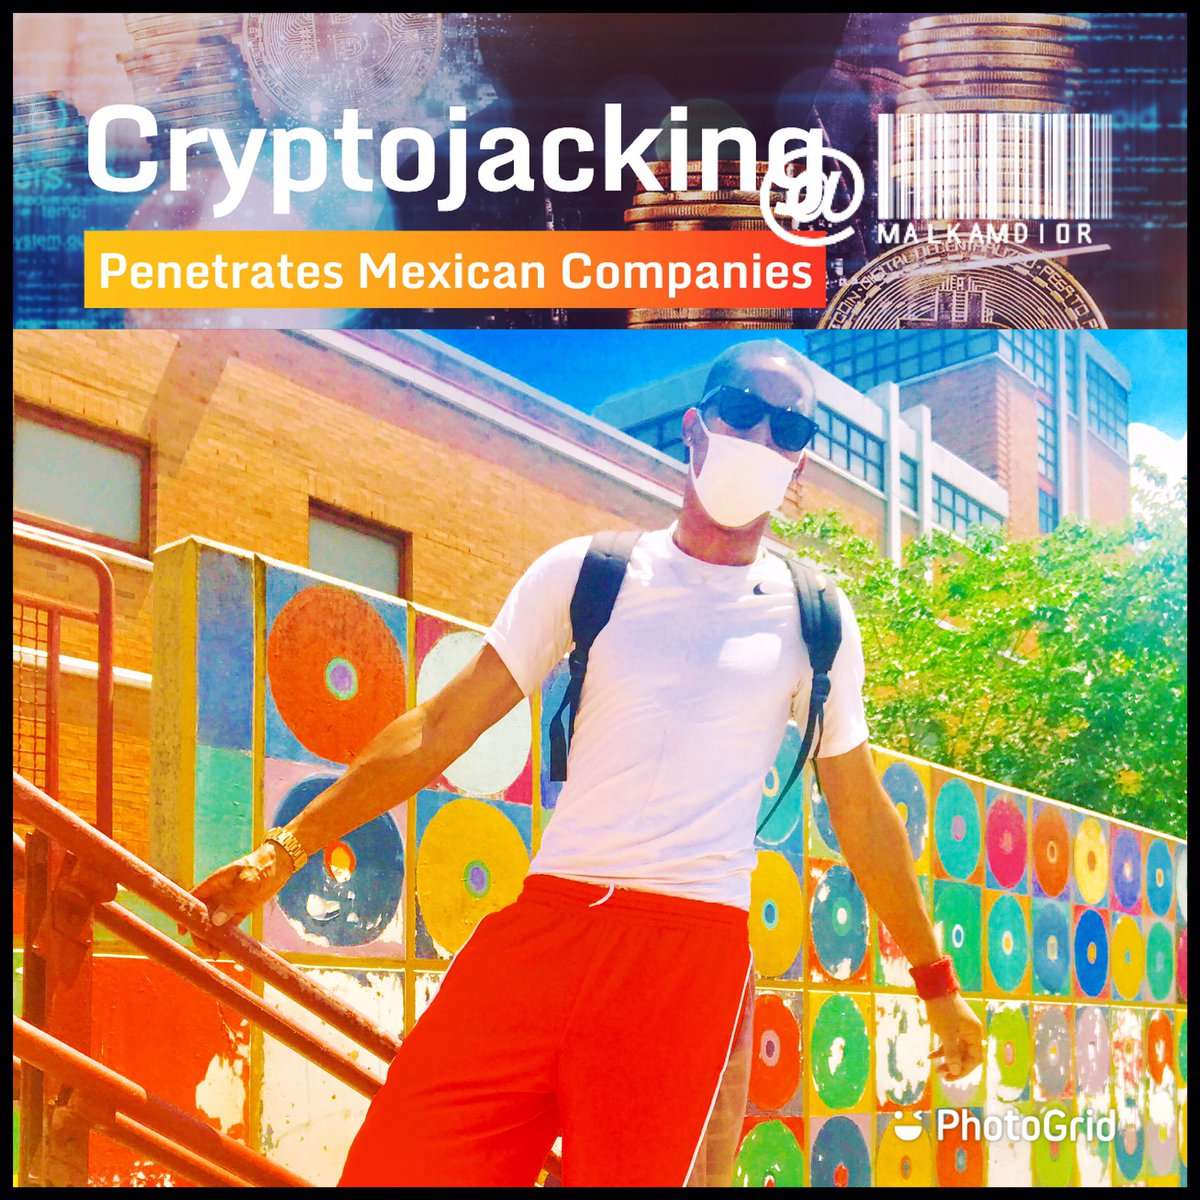 Mexican companies report they were a victim of #cryptojacking. Cyber-attacks use companies' #cloudcomputing power to mine cryptocurrencies. #Pemex, a #Mexico-based oil company http://www.malkamdior.com, to be recently targeted by attacks.  #Tokenmarketcaps #CryptoNews #Cryptopic.twitter.com/WW8oDKRdaa